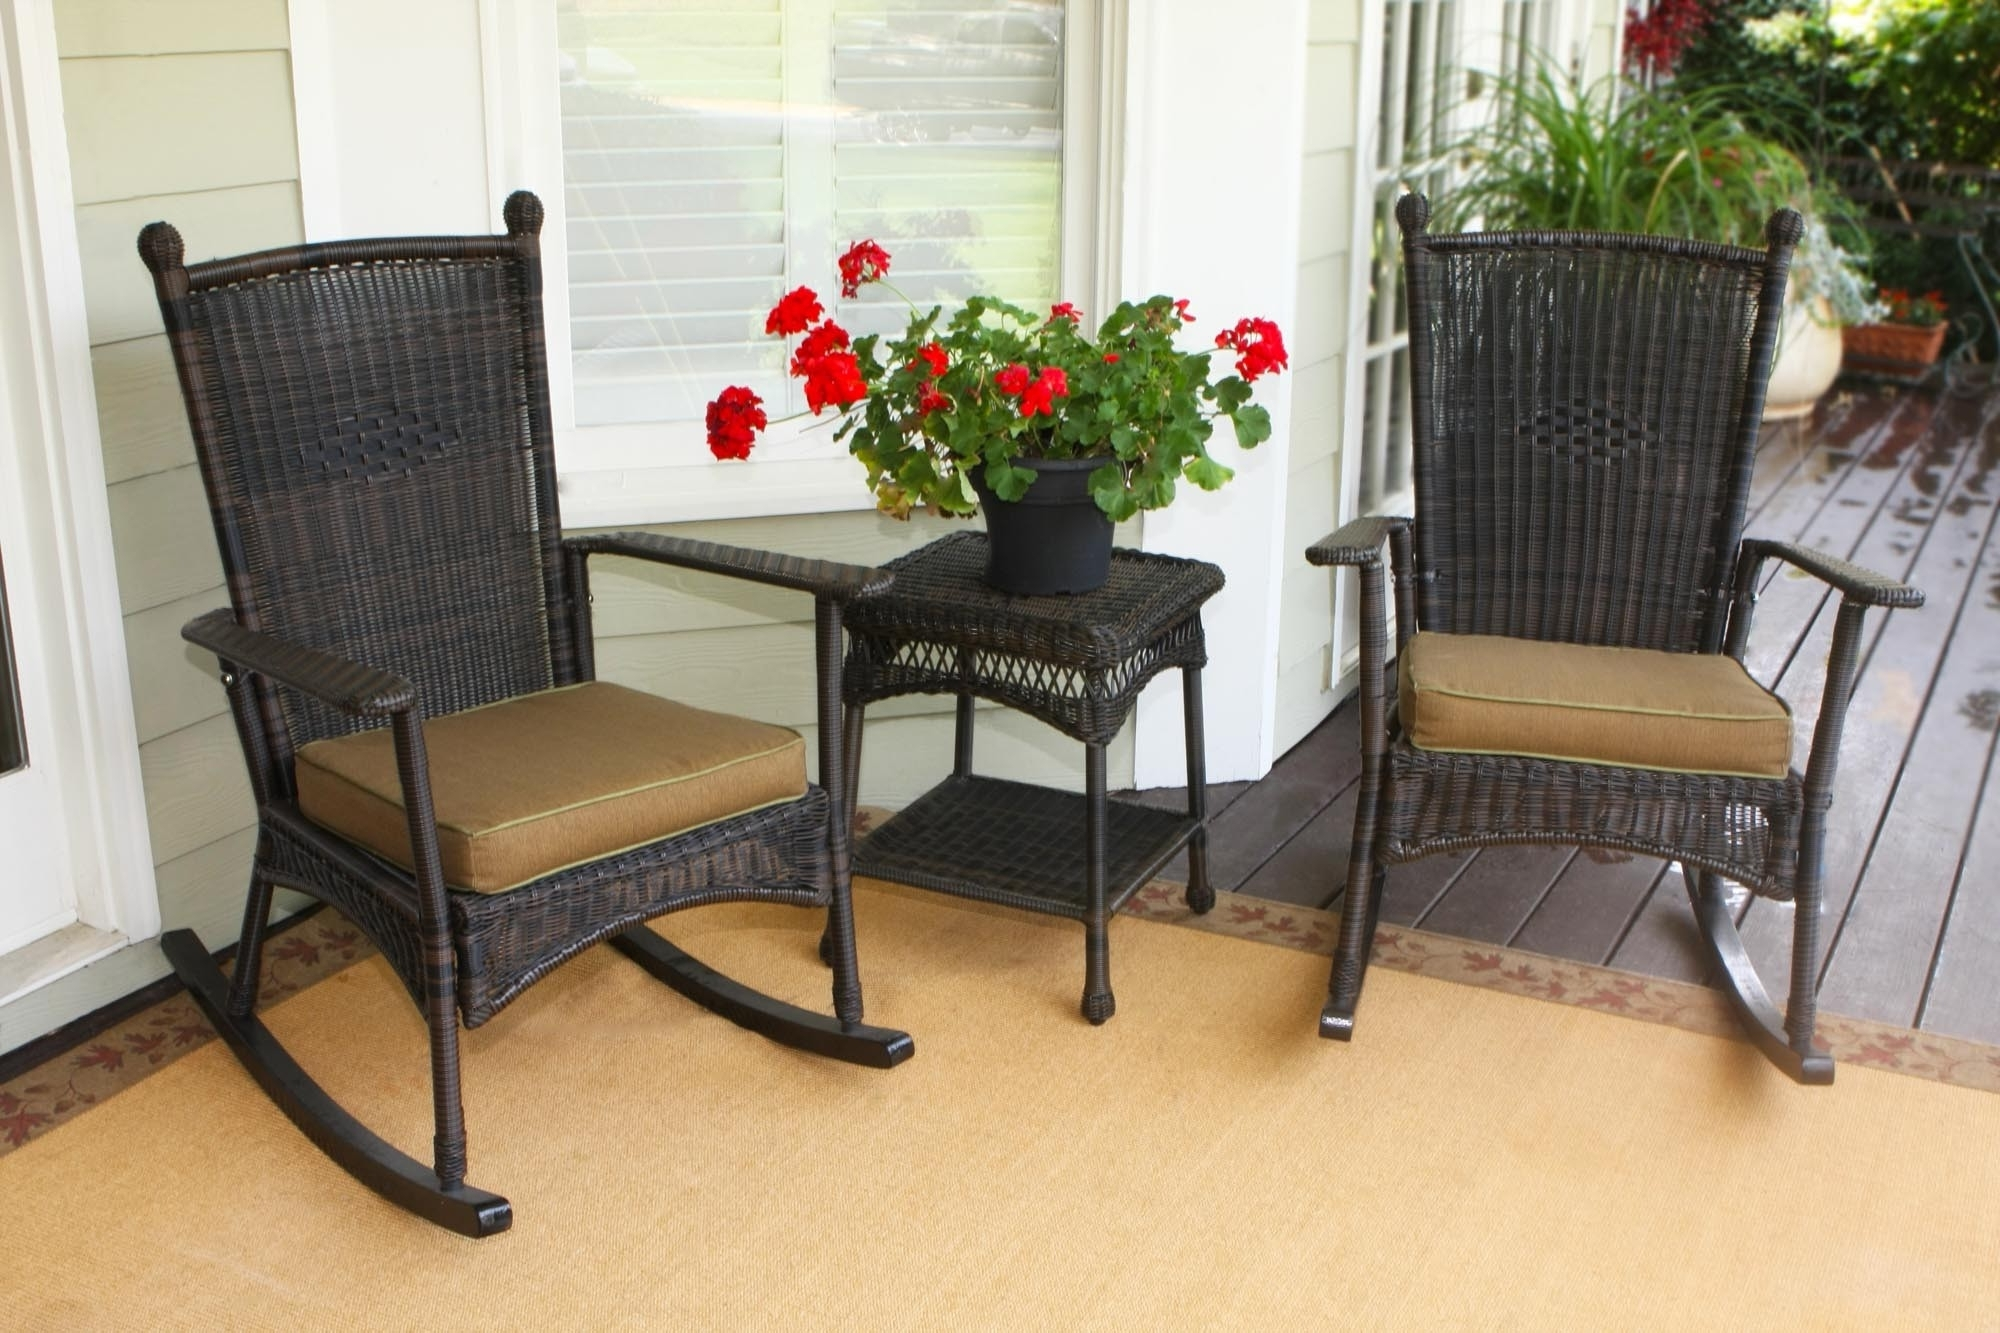 Rocking Chairs – Tortuga Outdoor Of Georgia – Alpharetta For Popular Wicker Rocking Chairs For Outdoors (View 14 of 20)